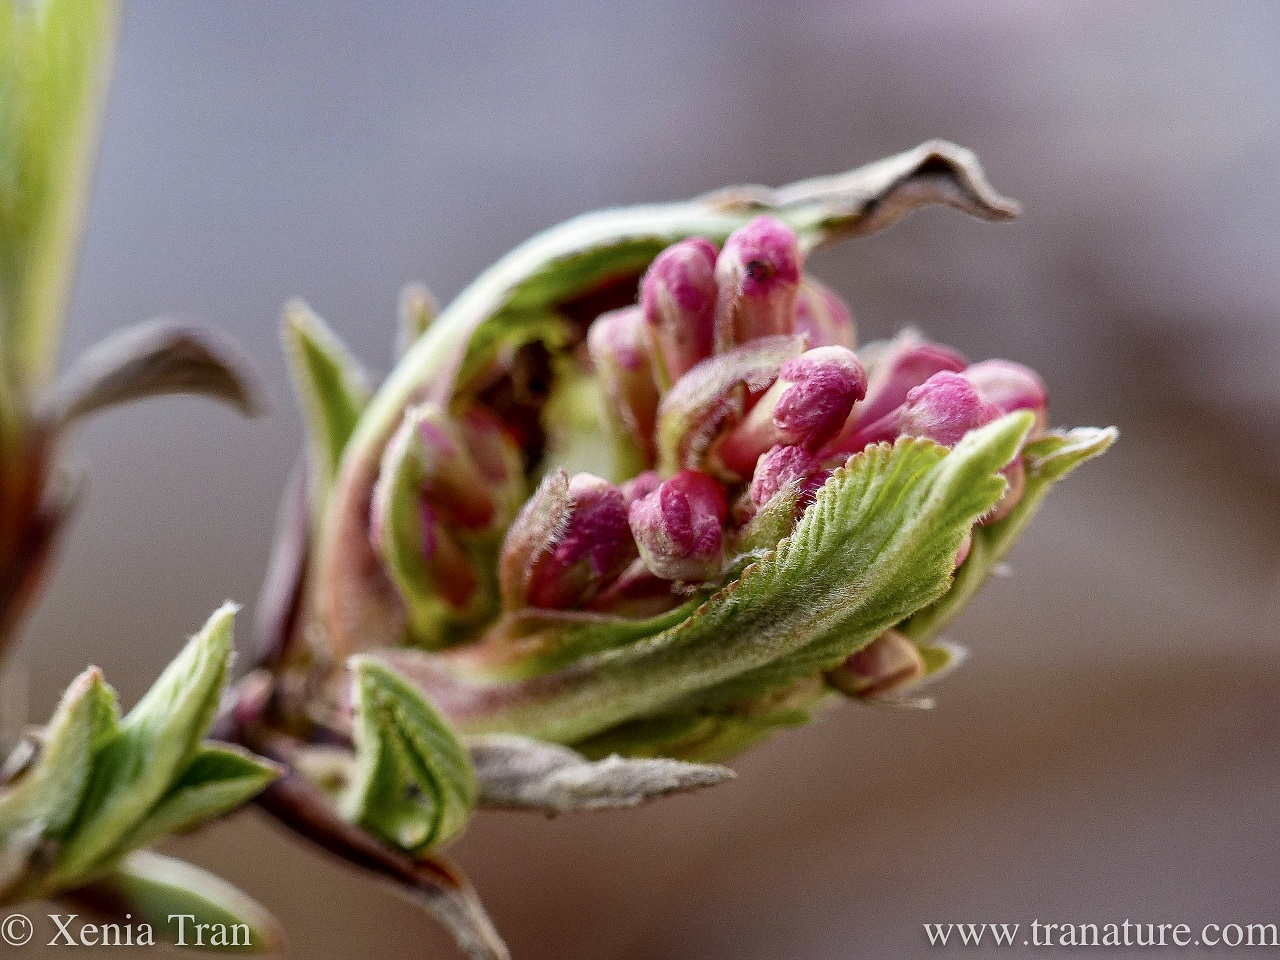 Wordless Wednesday: Winter Flower